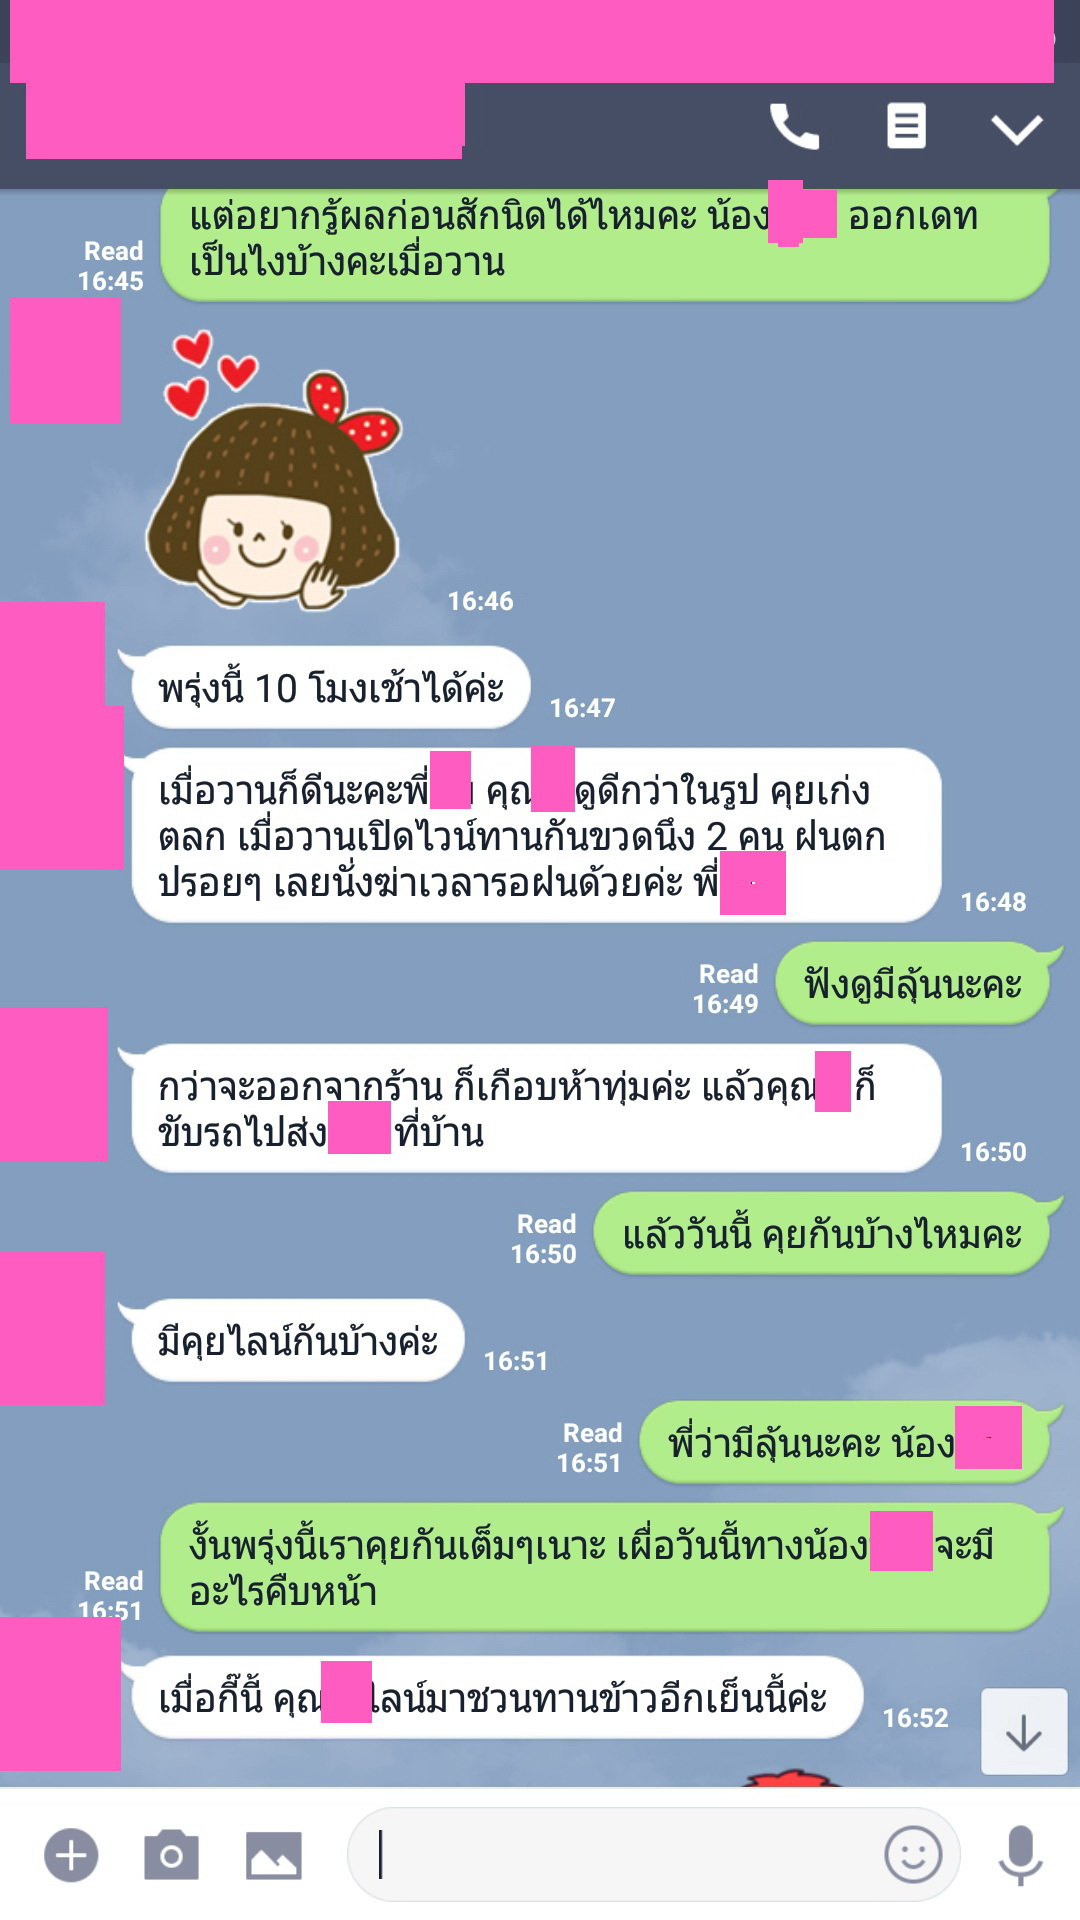 Dating Client was giving feedback date with her executive matchmaker. Client of Thai Best Matchmaking Service in Thailand.